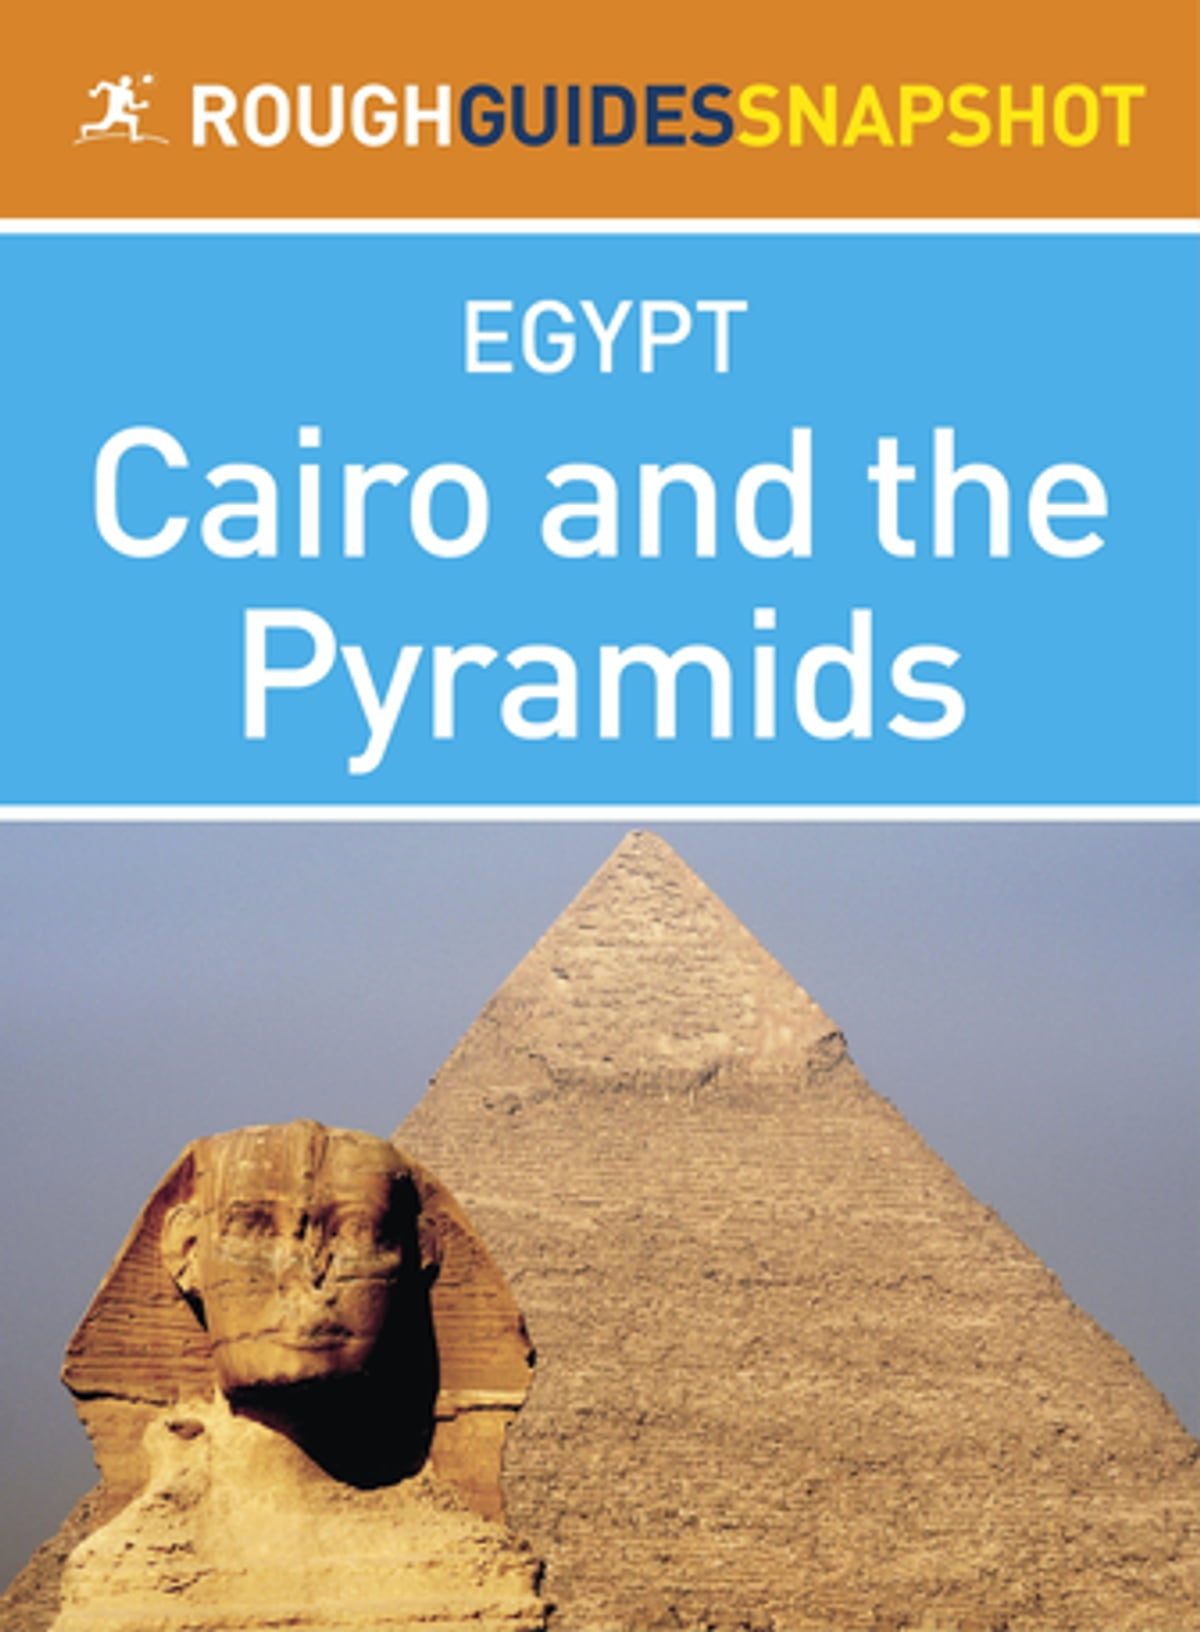 Read book the rough guide to cairo the pyramids free boook online.